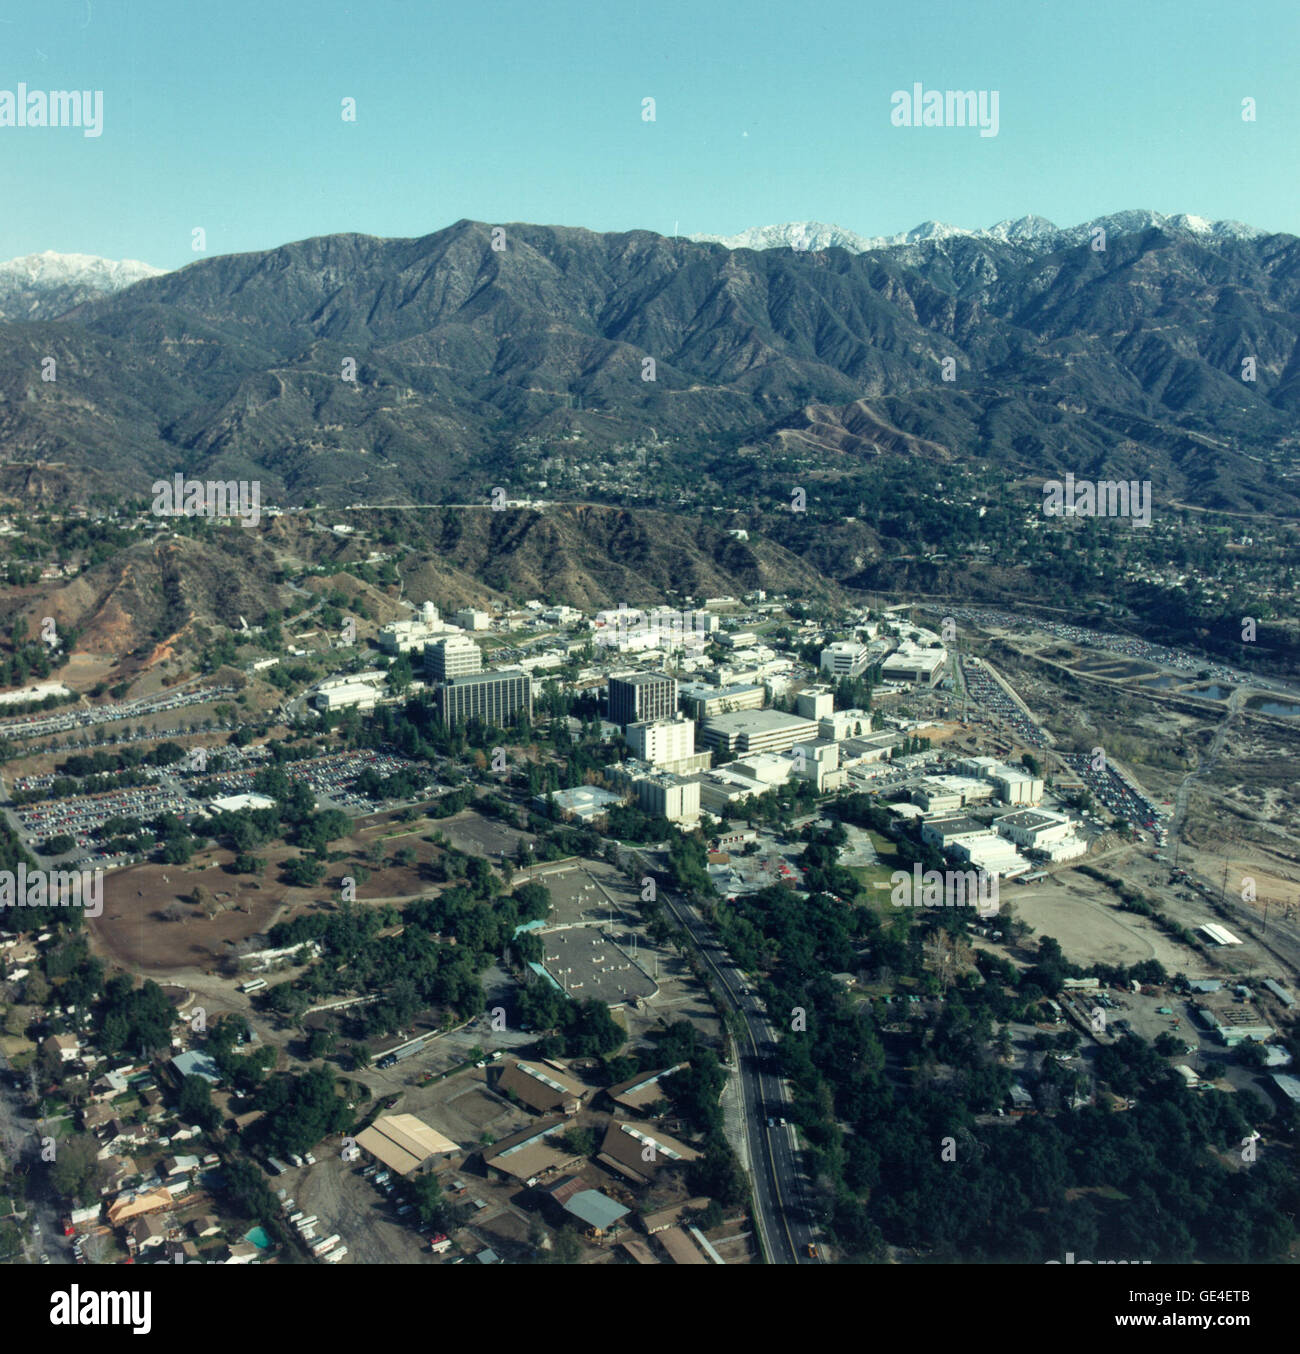 An aerial view of the Jet Propulsion Laboratory (JPL), Pasadena, California and the surrounding San Gabriel Mountains. - Stock Image